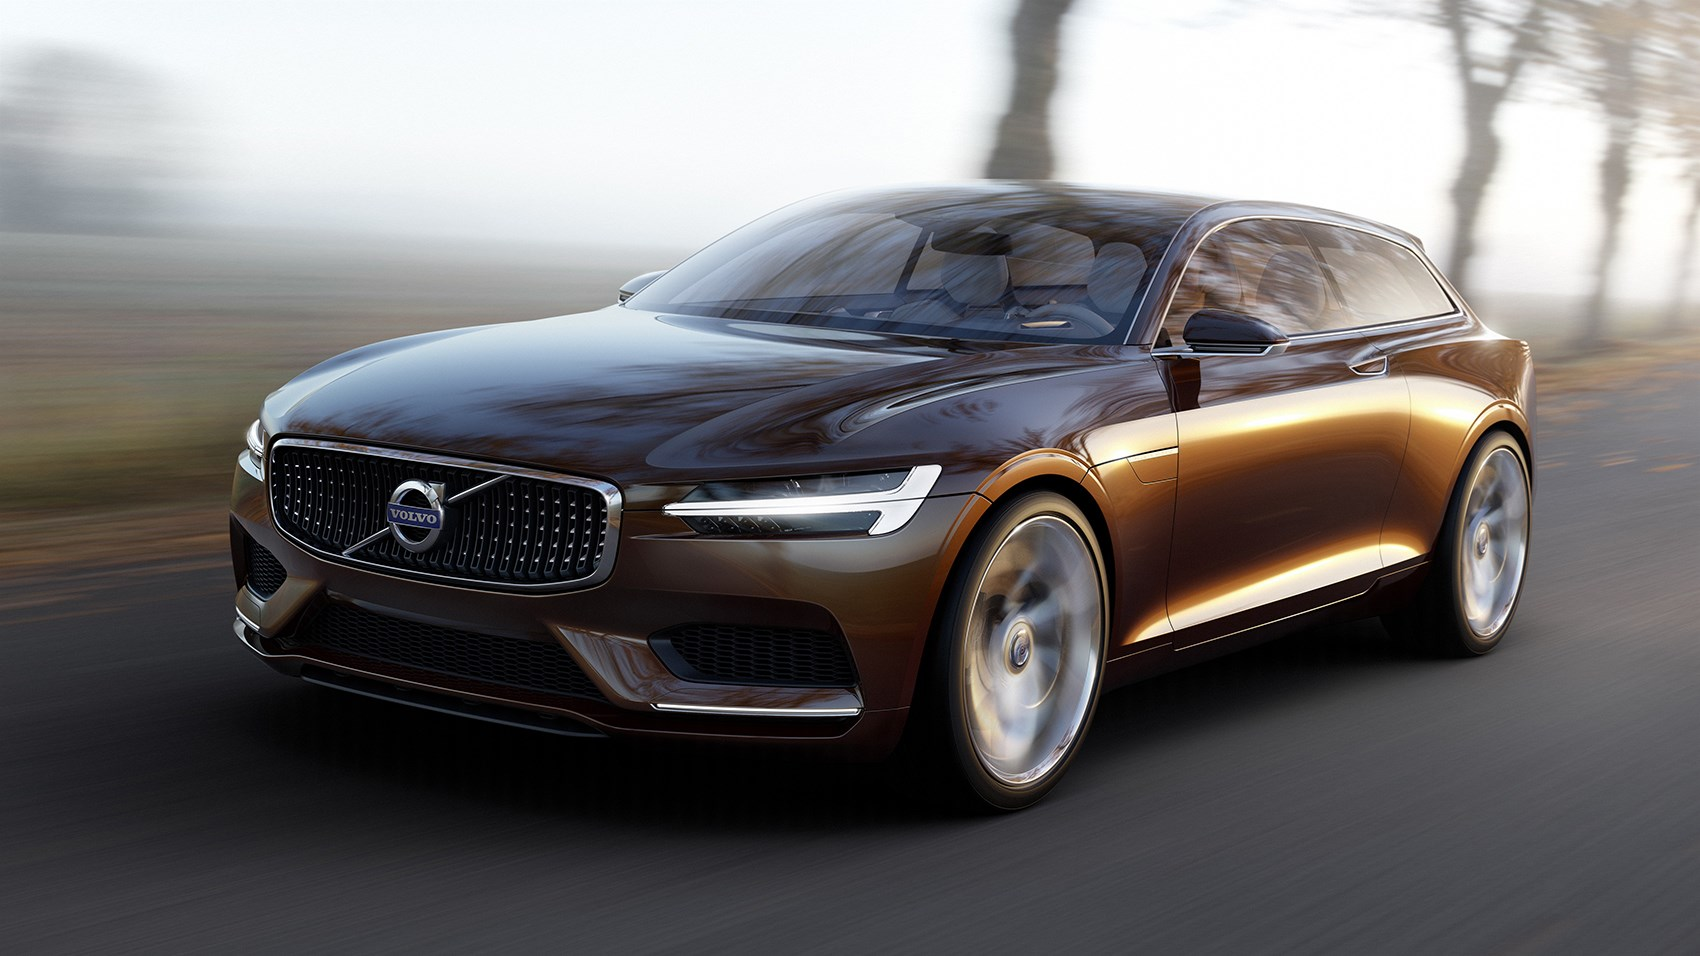 Expect Similar Looks To This Concept Car